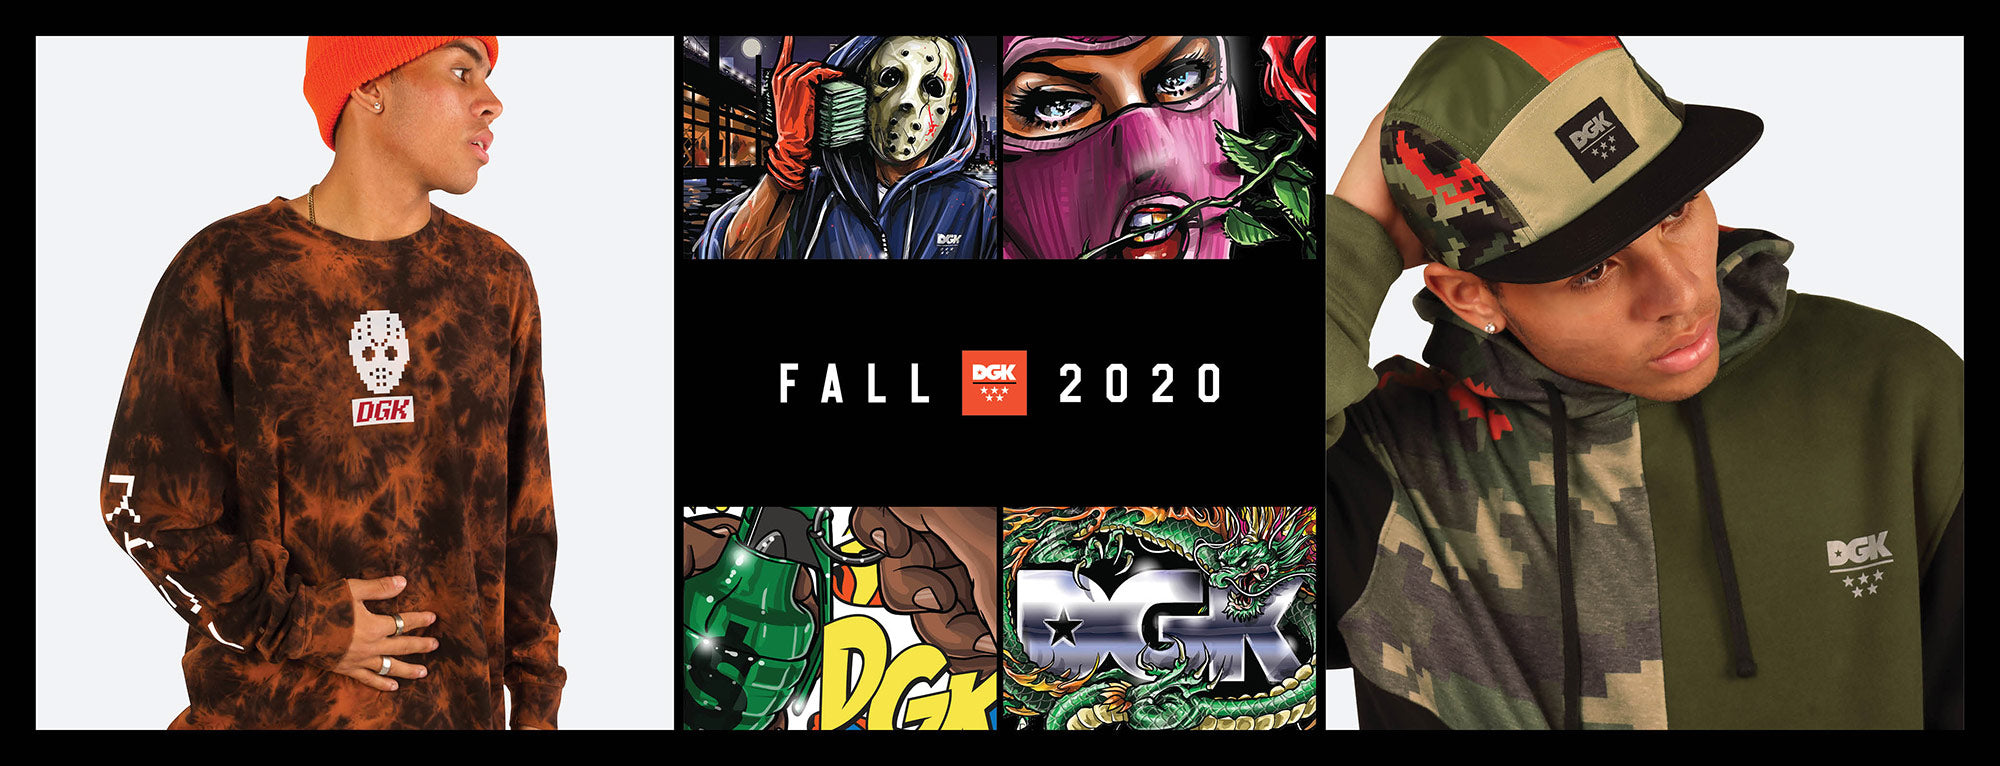 DGK Fall 2020 Fusion Collection